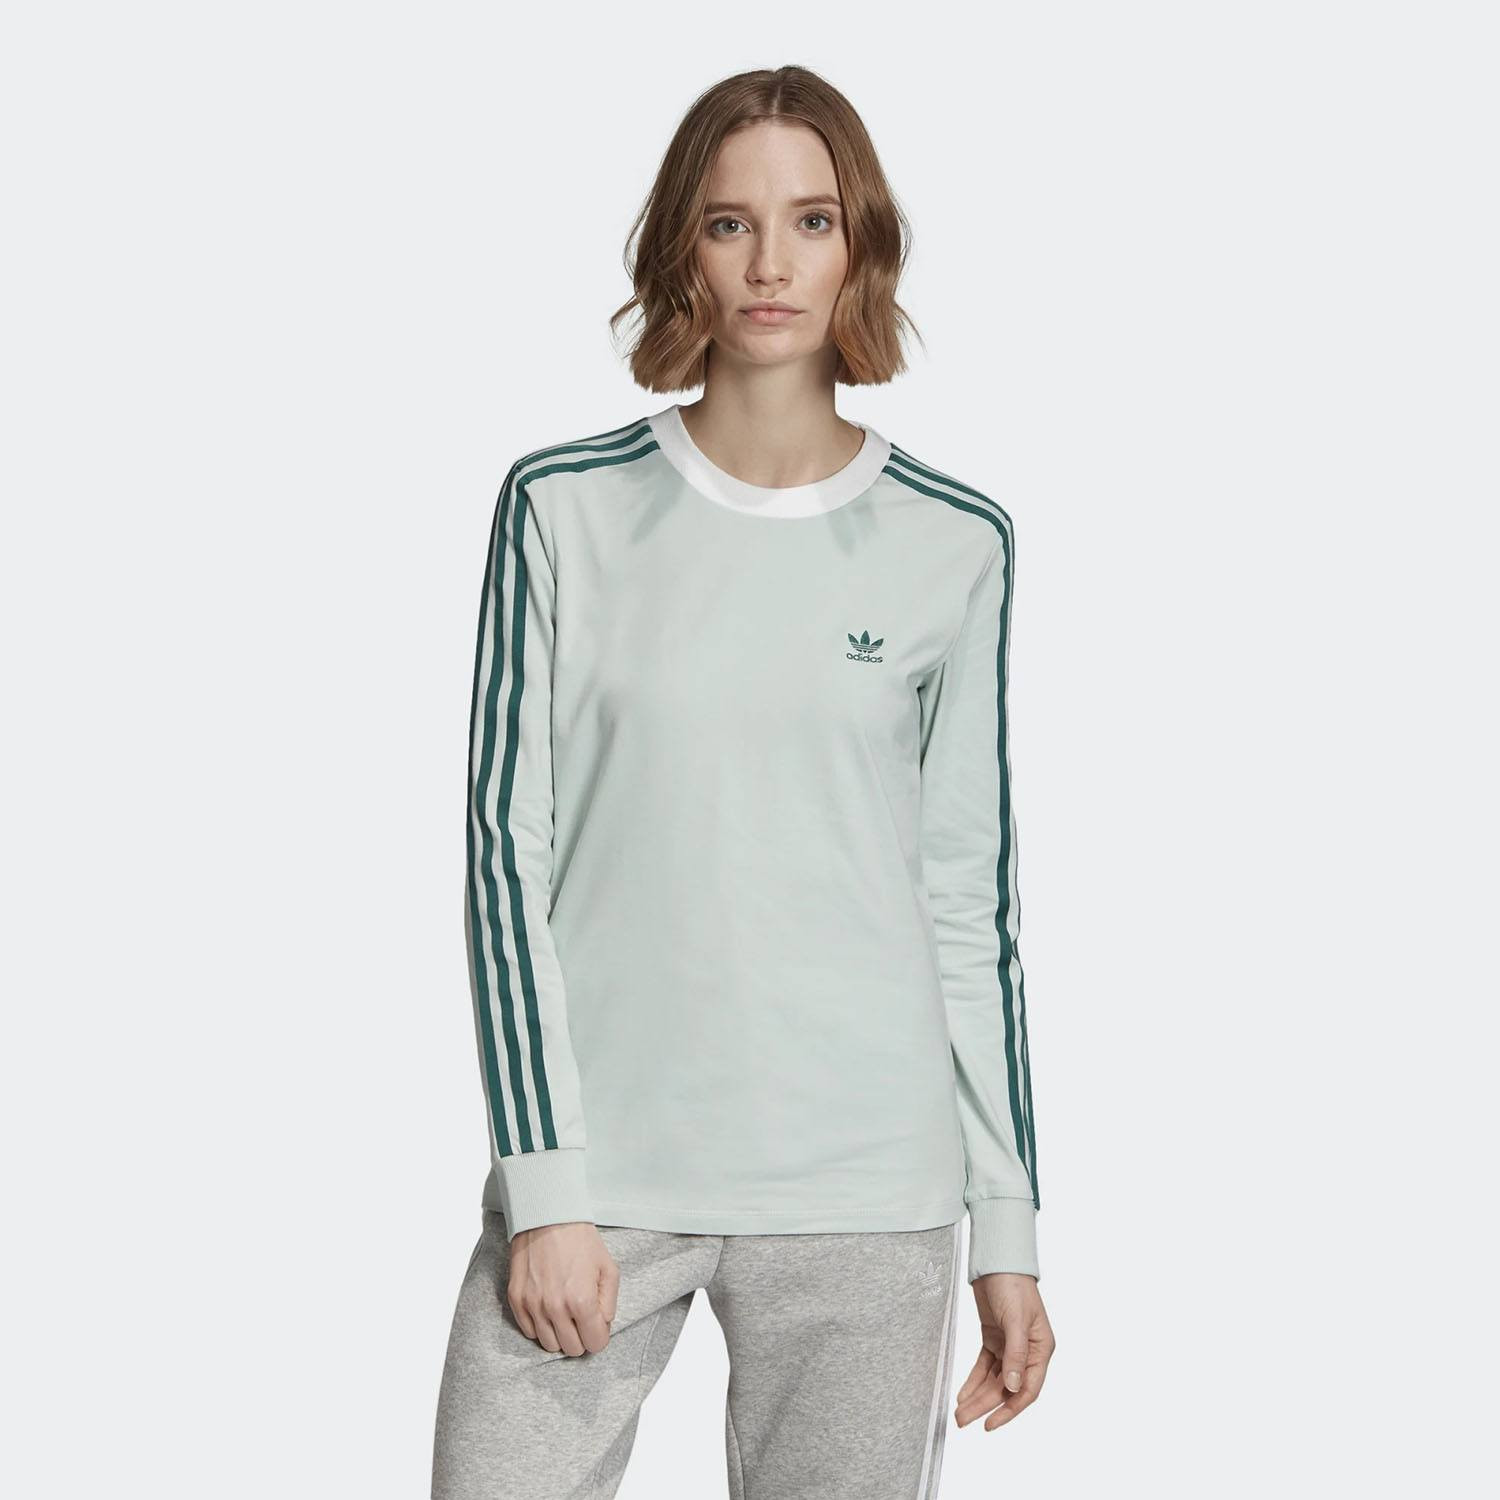 adidas Originals 3 Stripes Women's Tee (9000032505_21295)